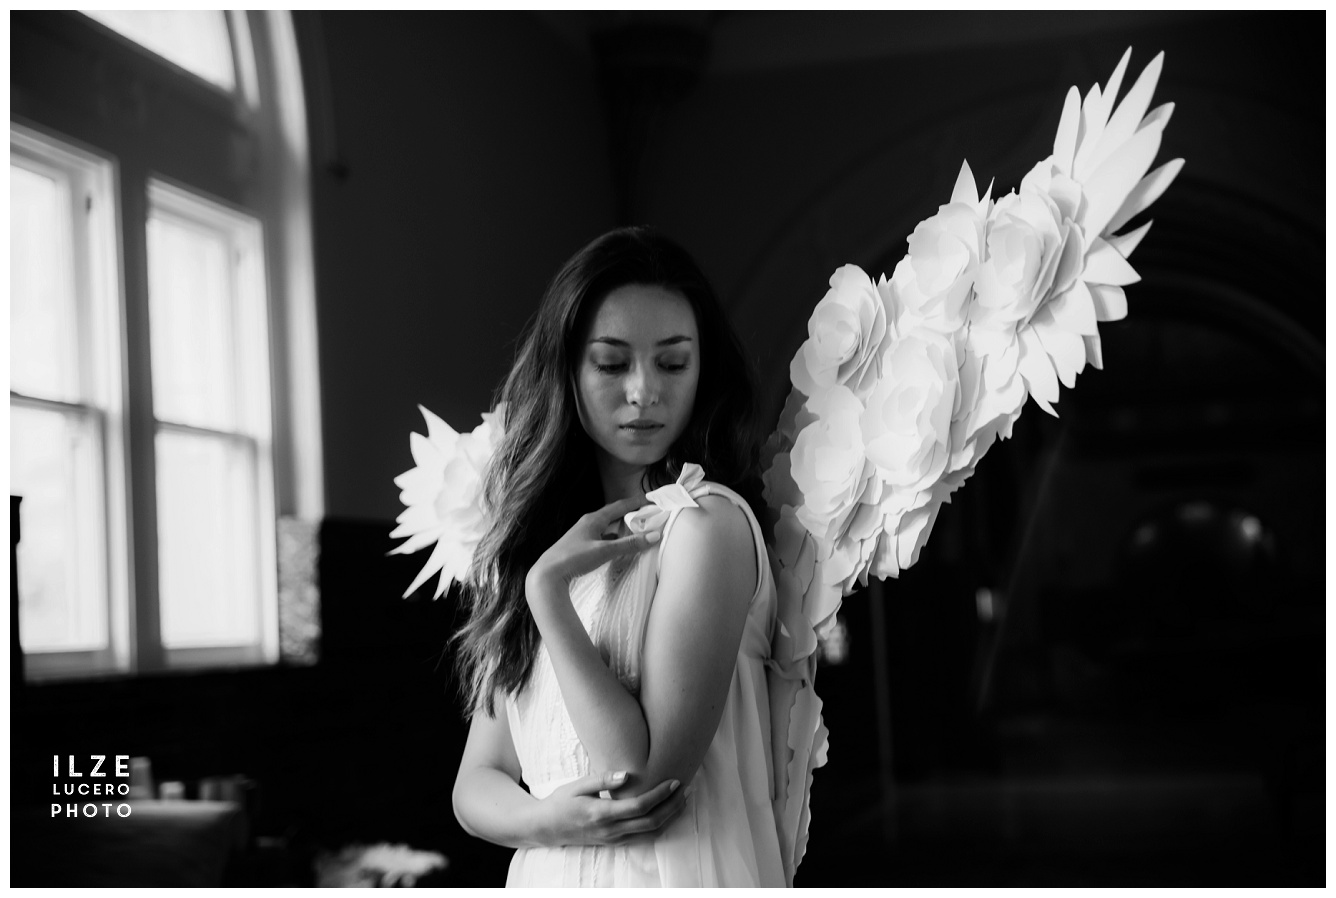 Angel wings cosplay built from paper flowers